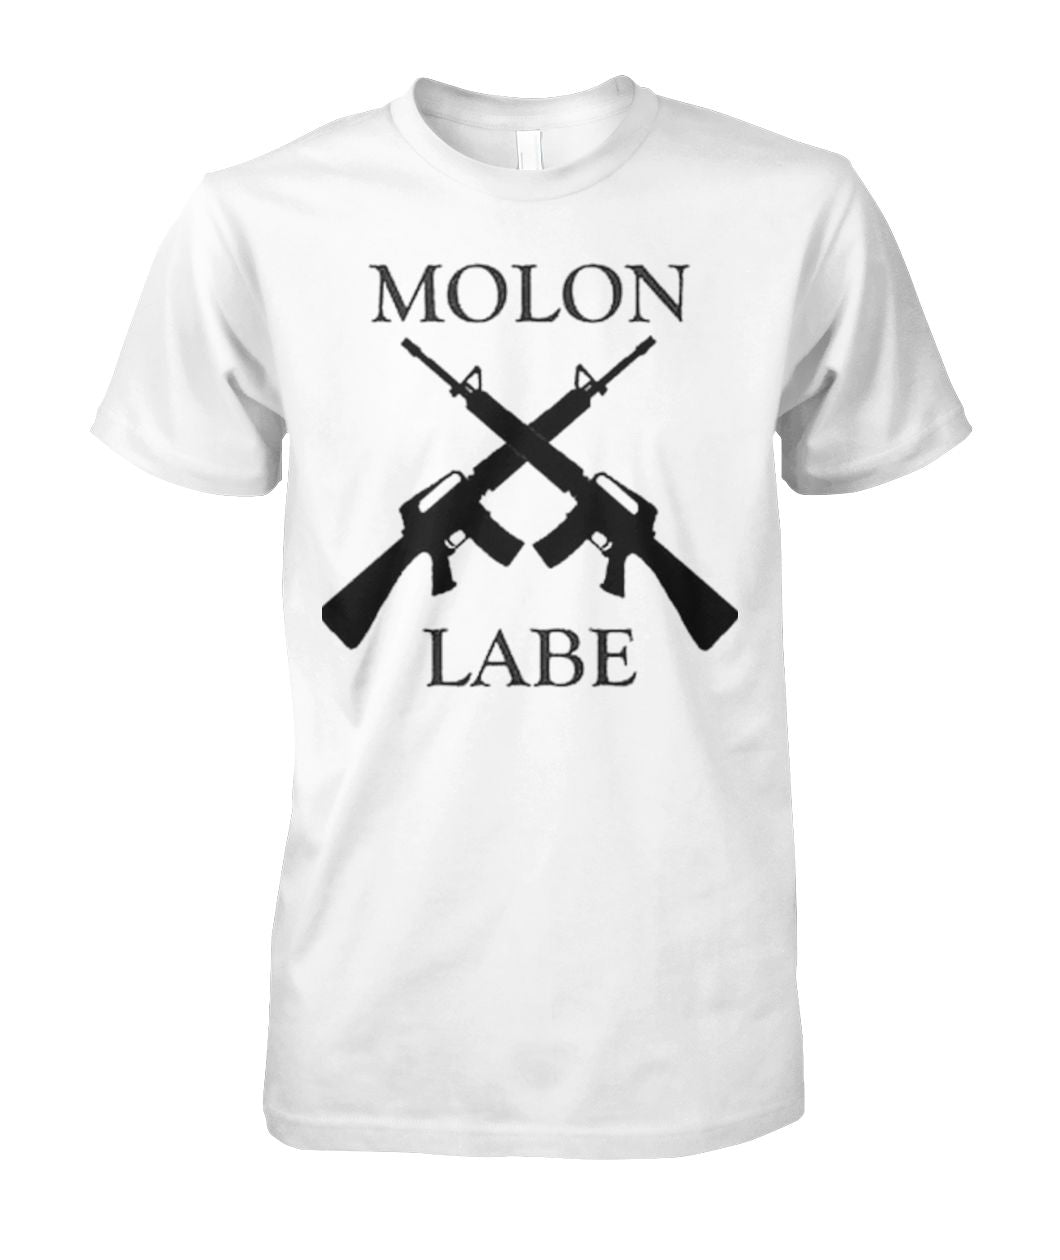 Molon Labe Crossed Rifles